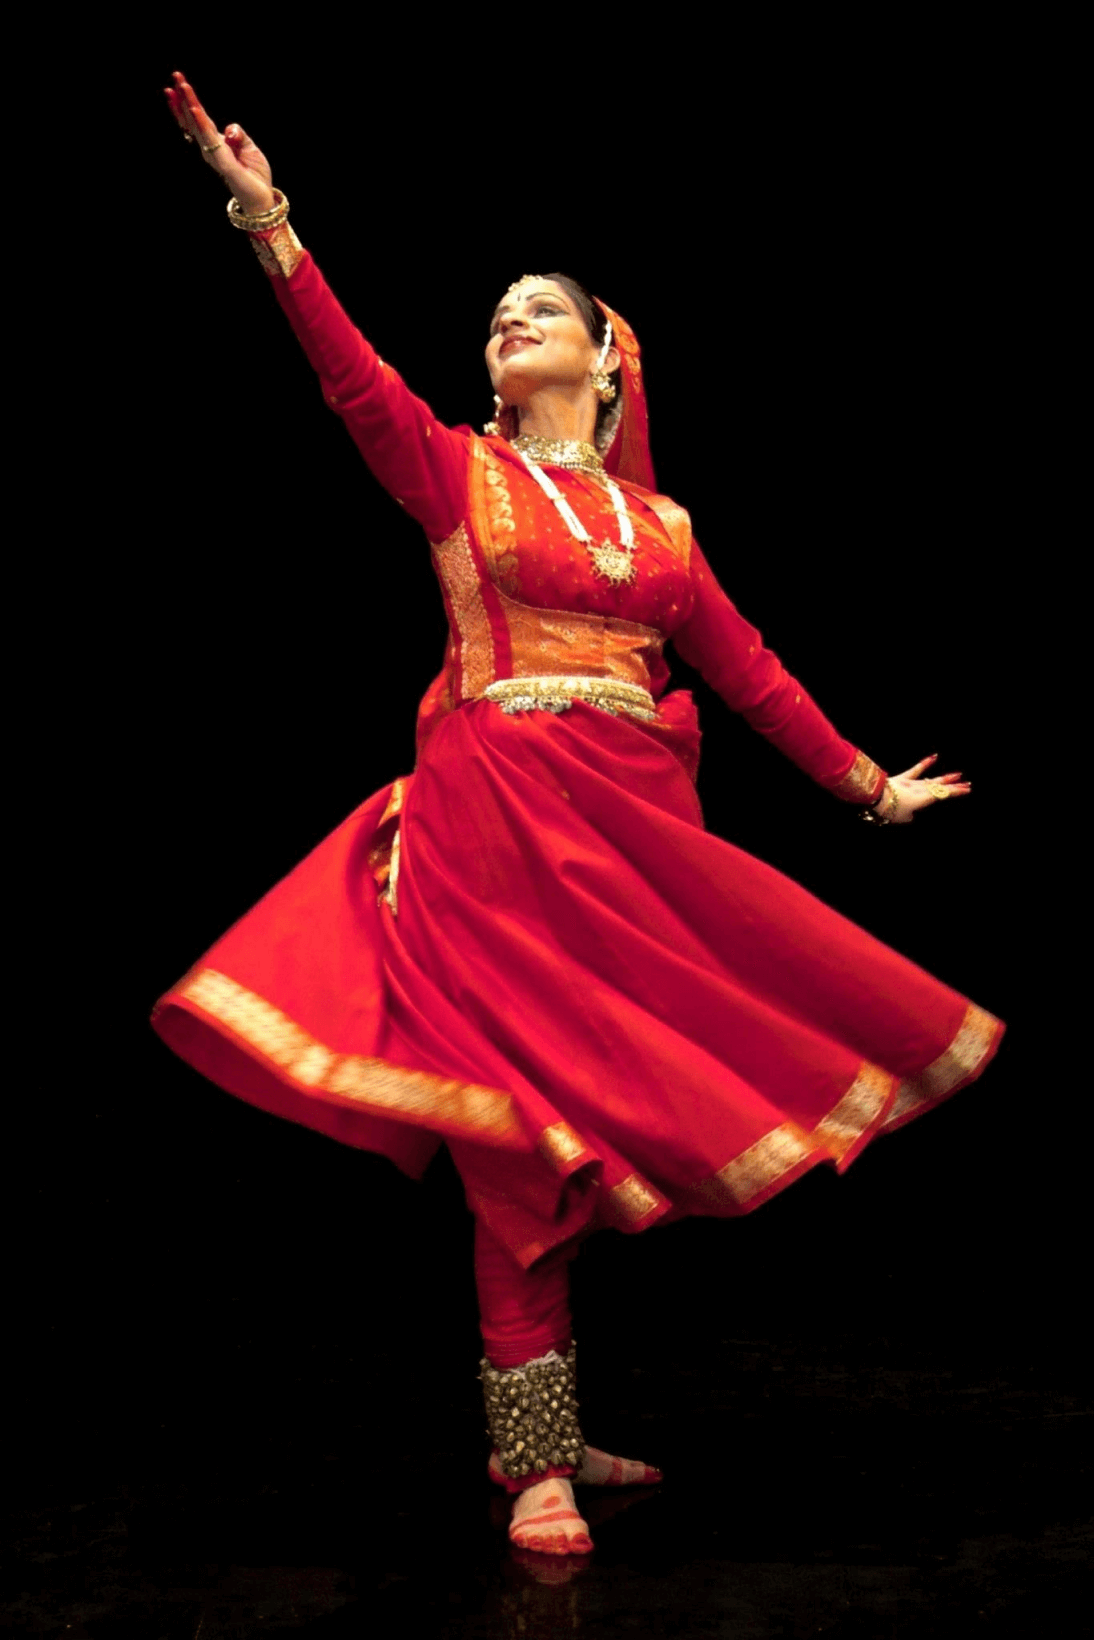 A woman in a Kathak pose.